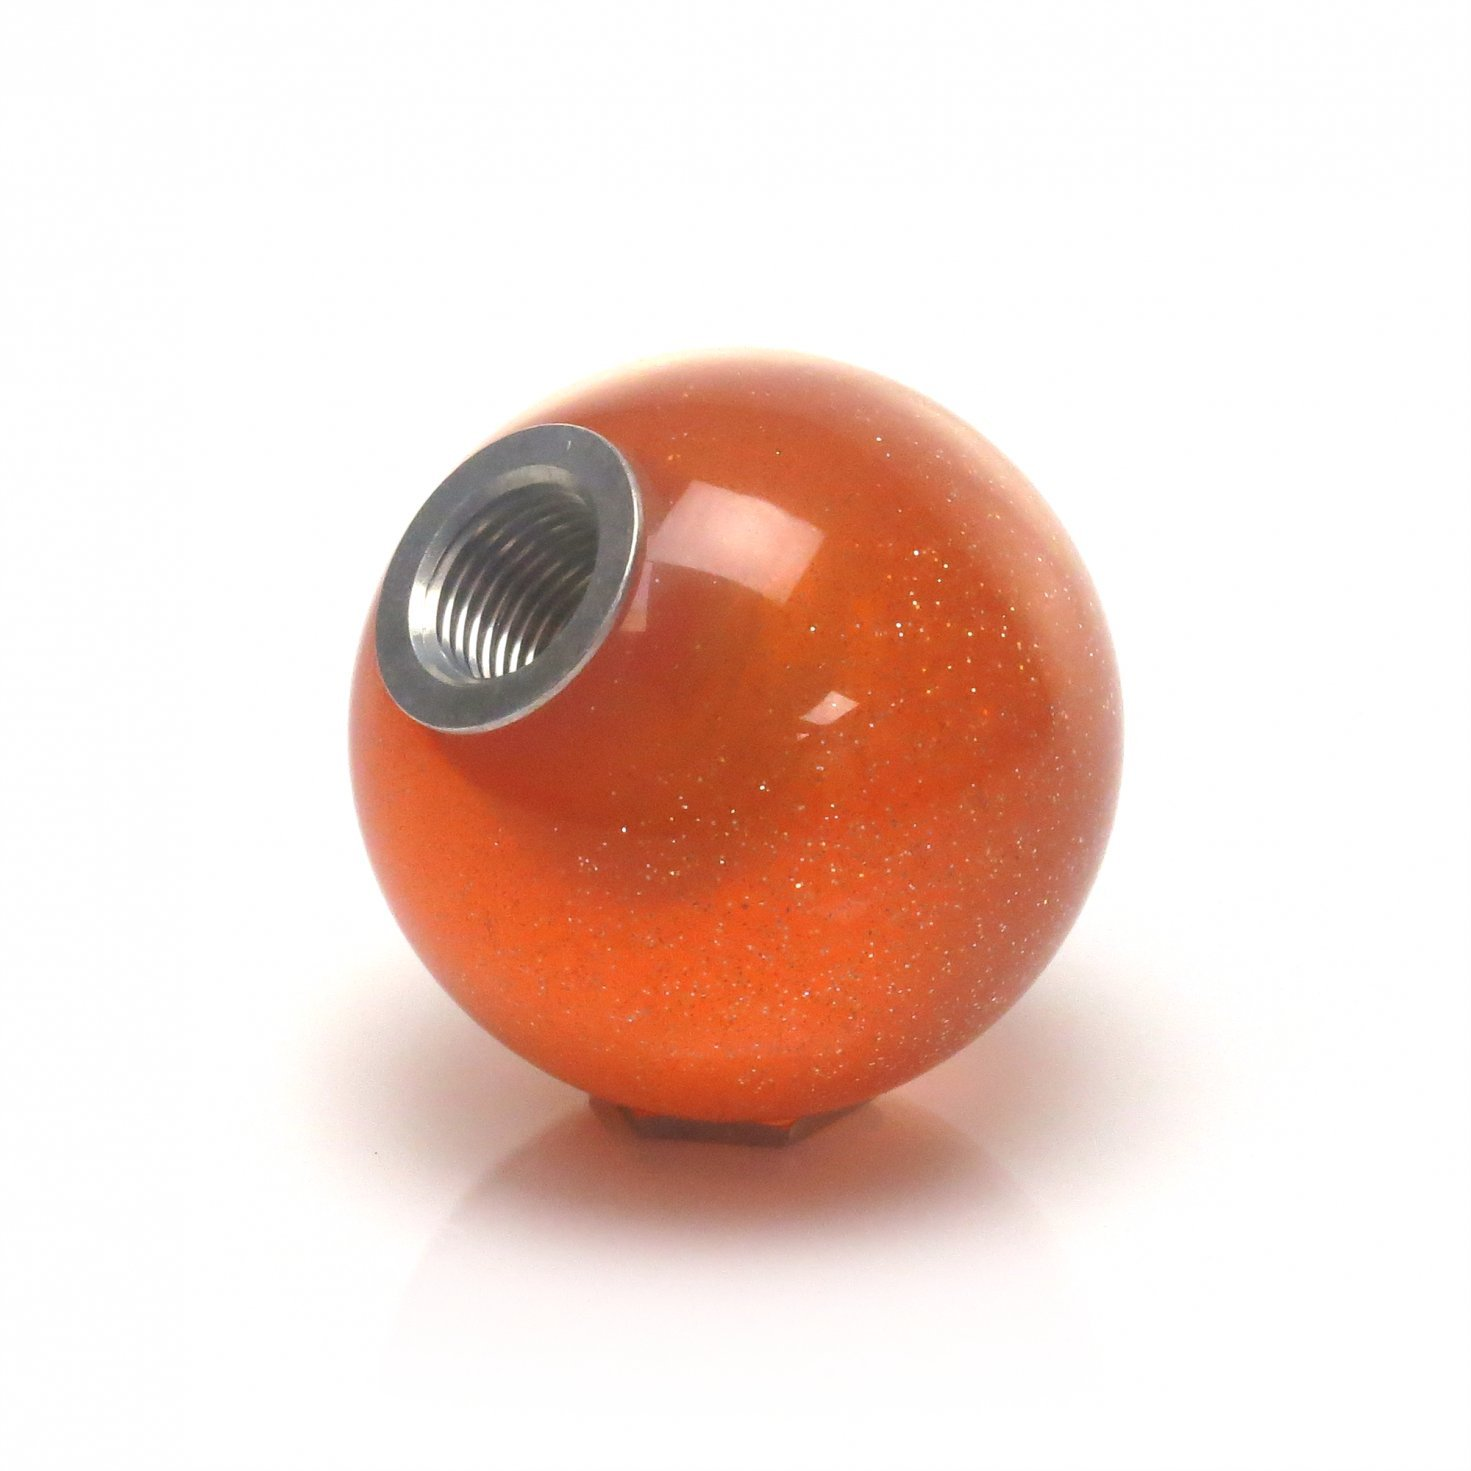 American Shifter 45989 Orange Metal Flake Shift Knob with 16mm x 1.5 Insert Yellow Breast Cancer Awareness